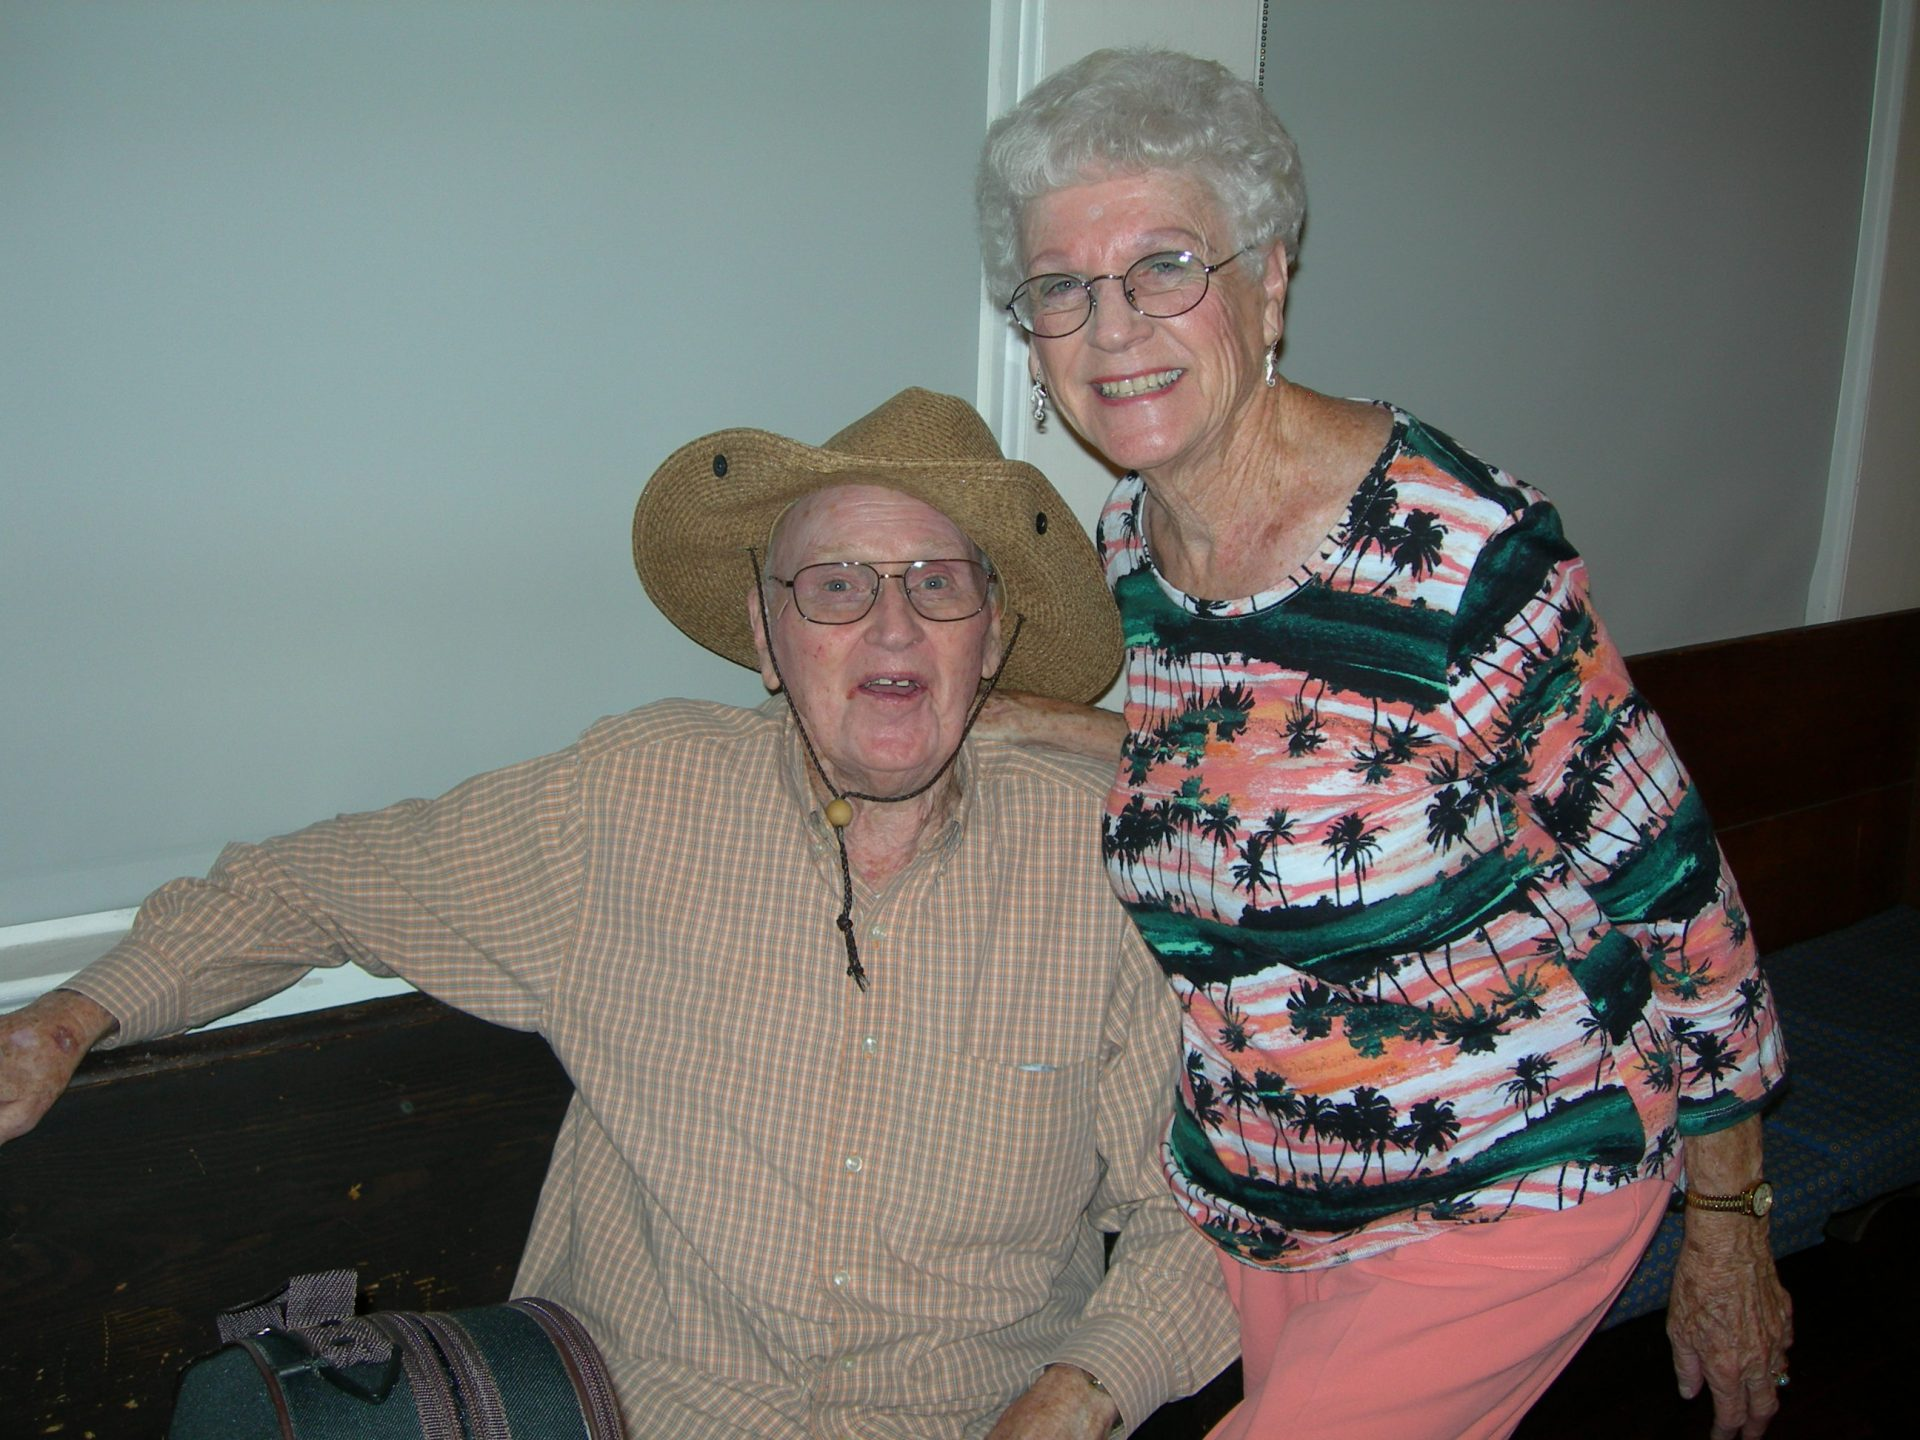 Bill always had a hug and a smile!  He will be greatly missed by the Barberville Pioneer Settlement's First Saturday Music folks!<br /> We know he is dancing in heaven!